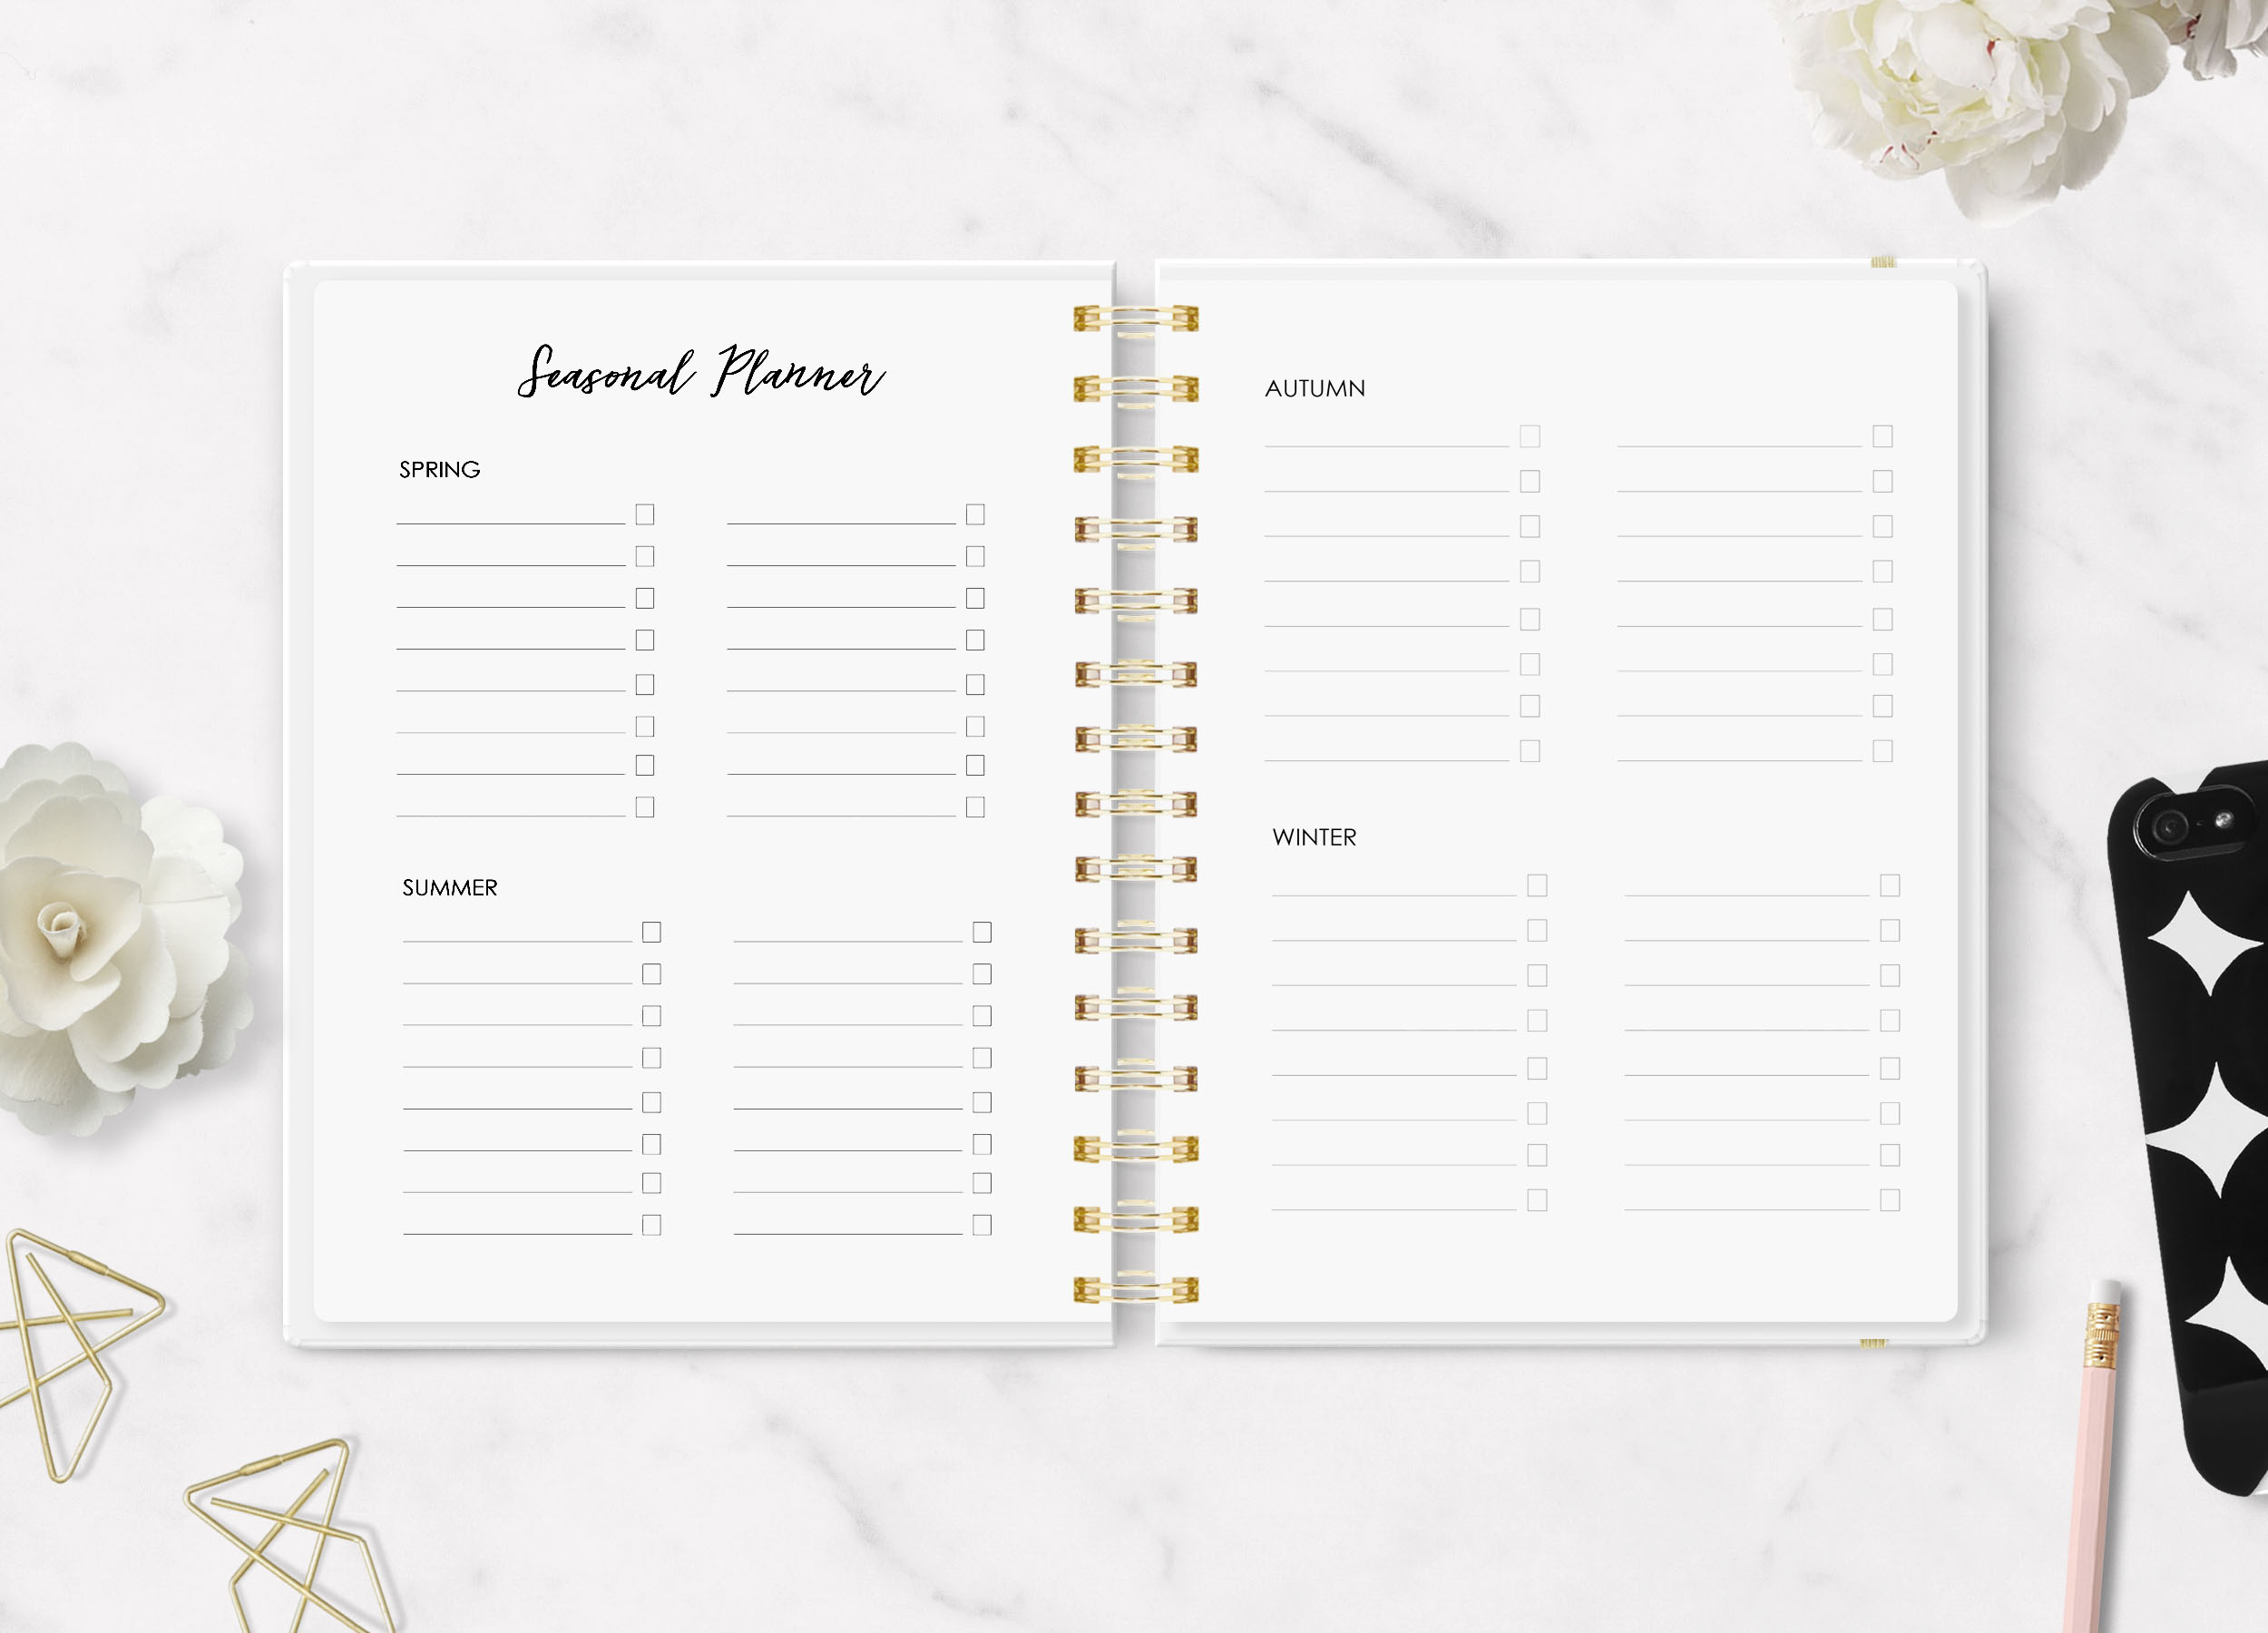 Seasonal planning in the Happy Creative Life Planner System